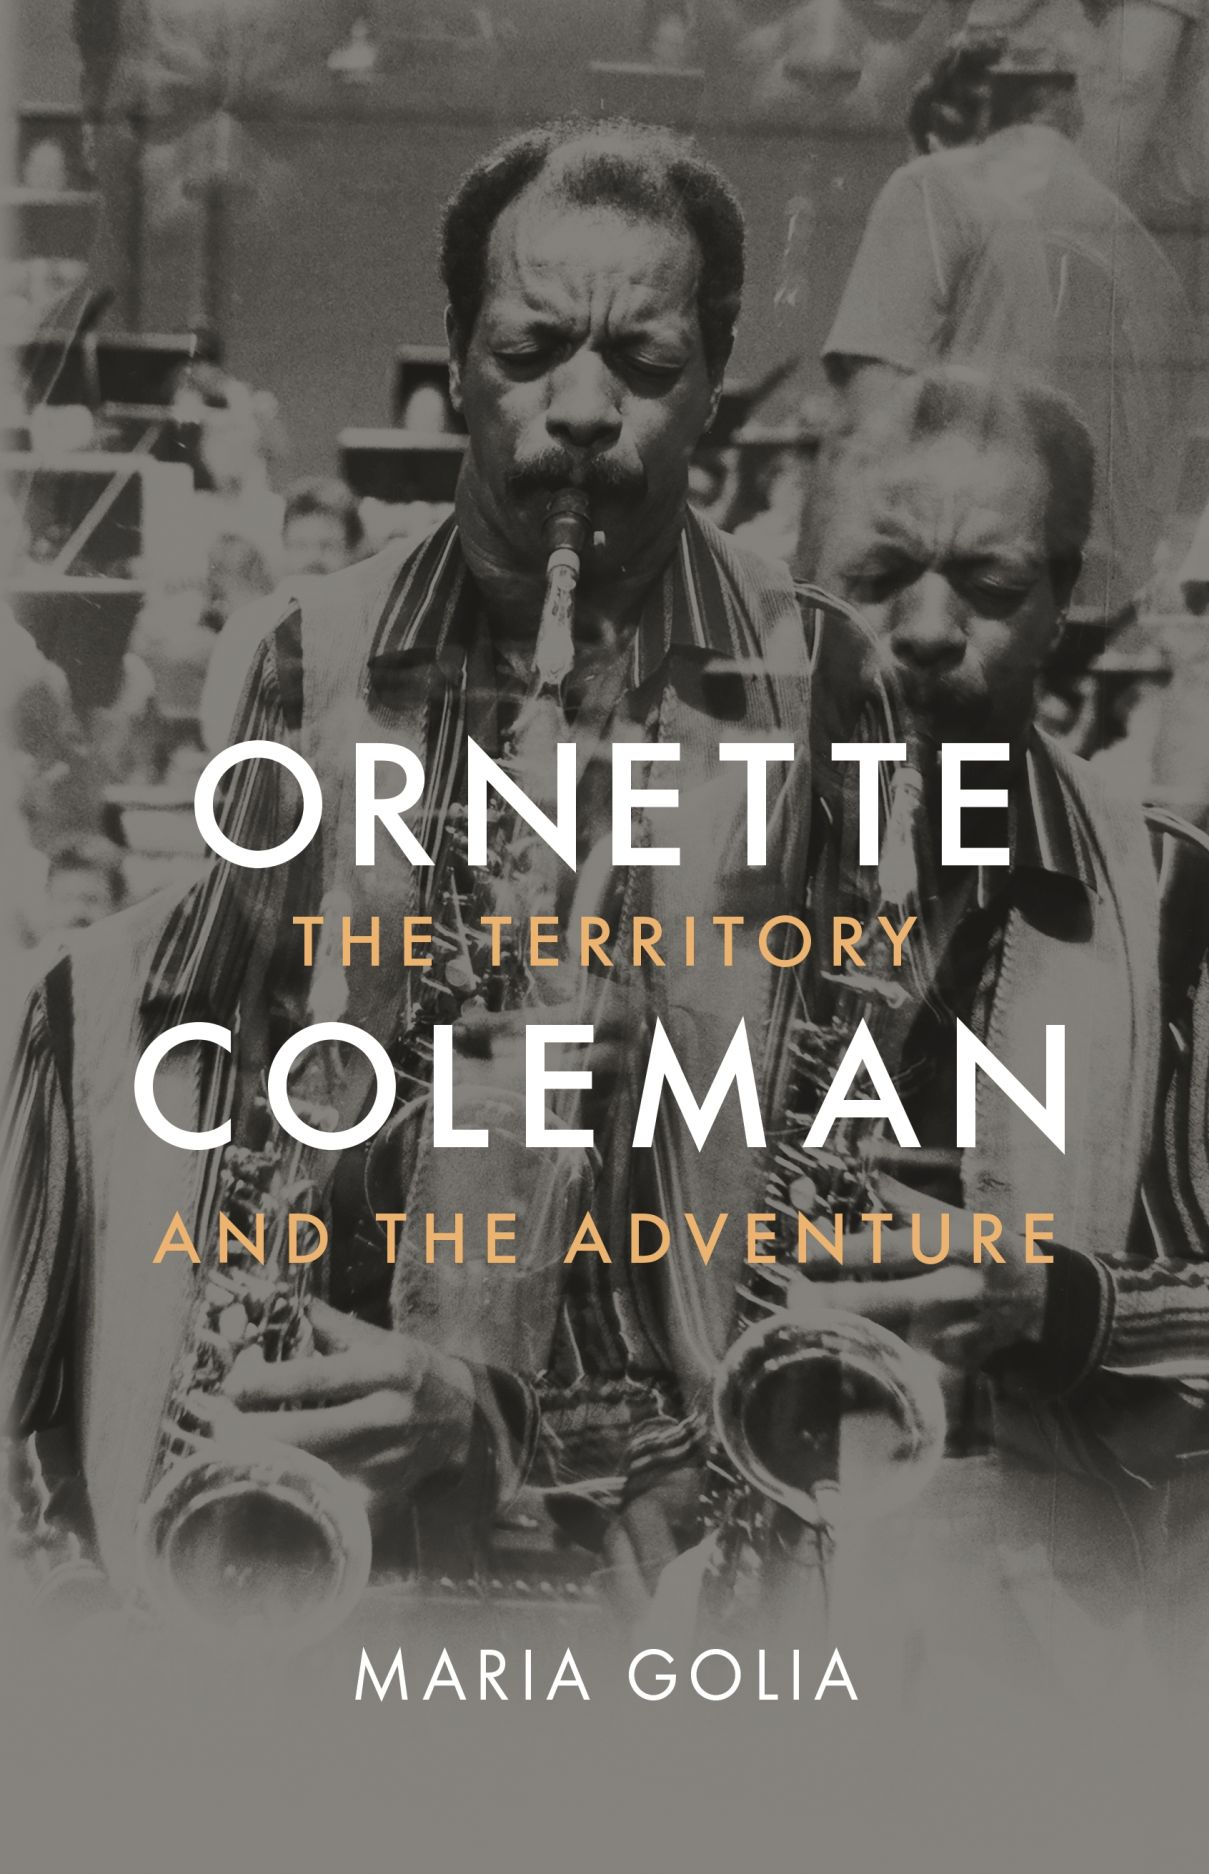 Ornette Coleman: The Territory and the Adventure